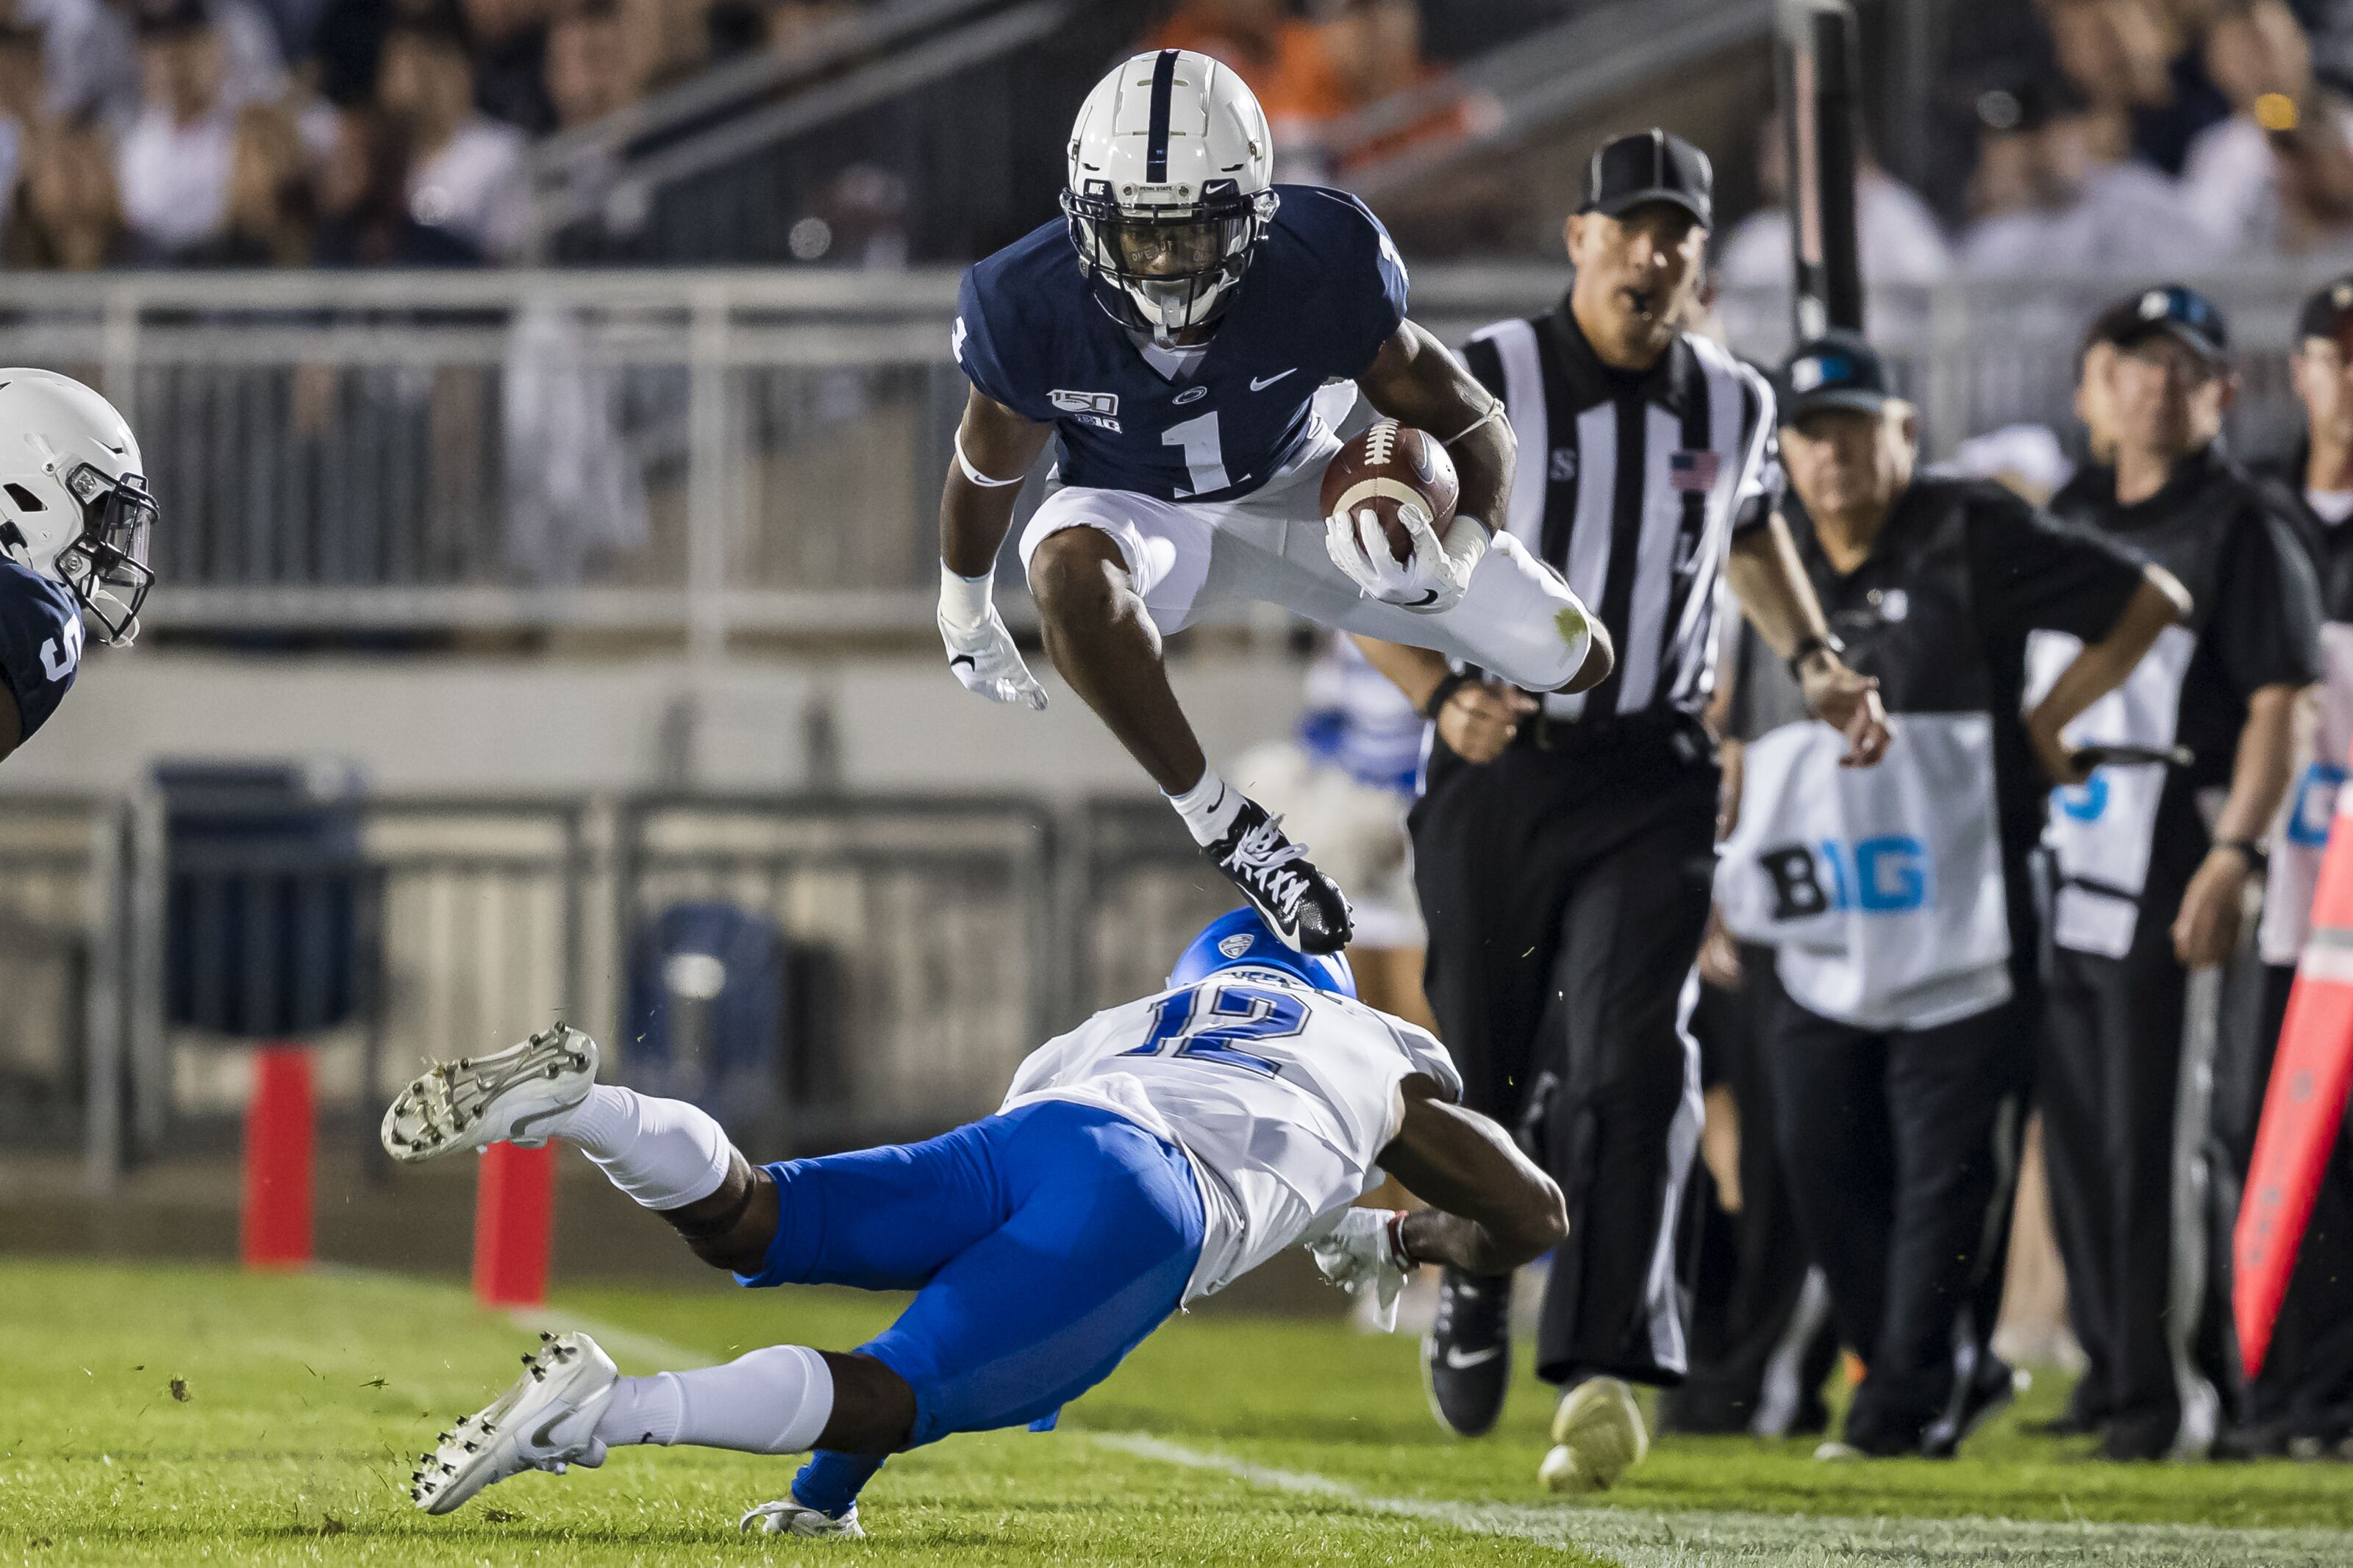 Penn State Football: 3 takeaways from pull-away win over Buffalo